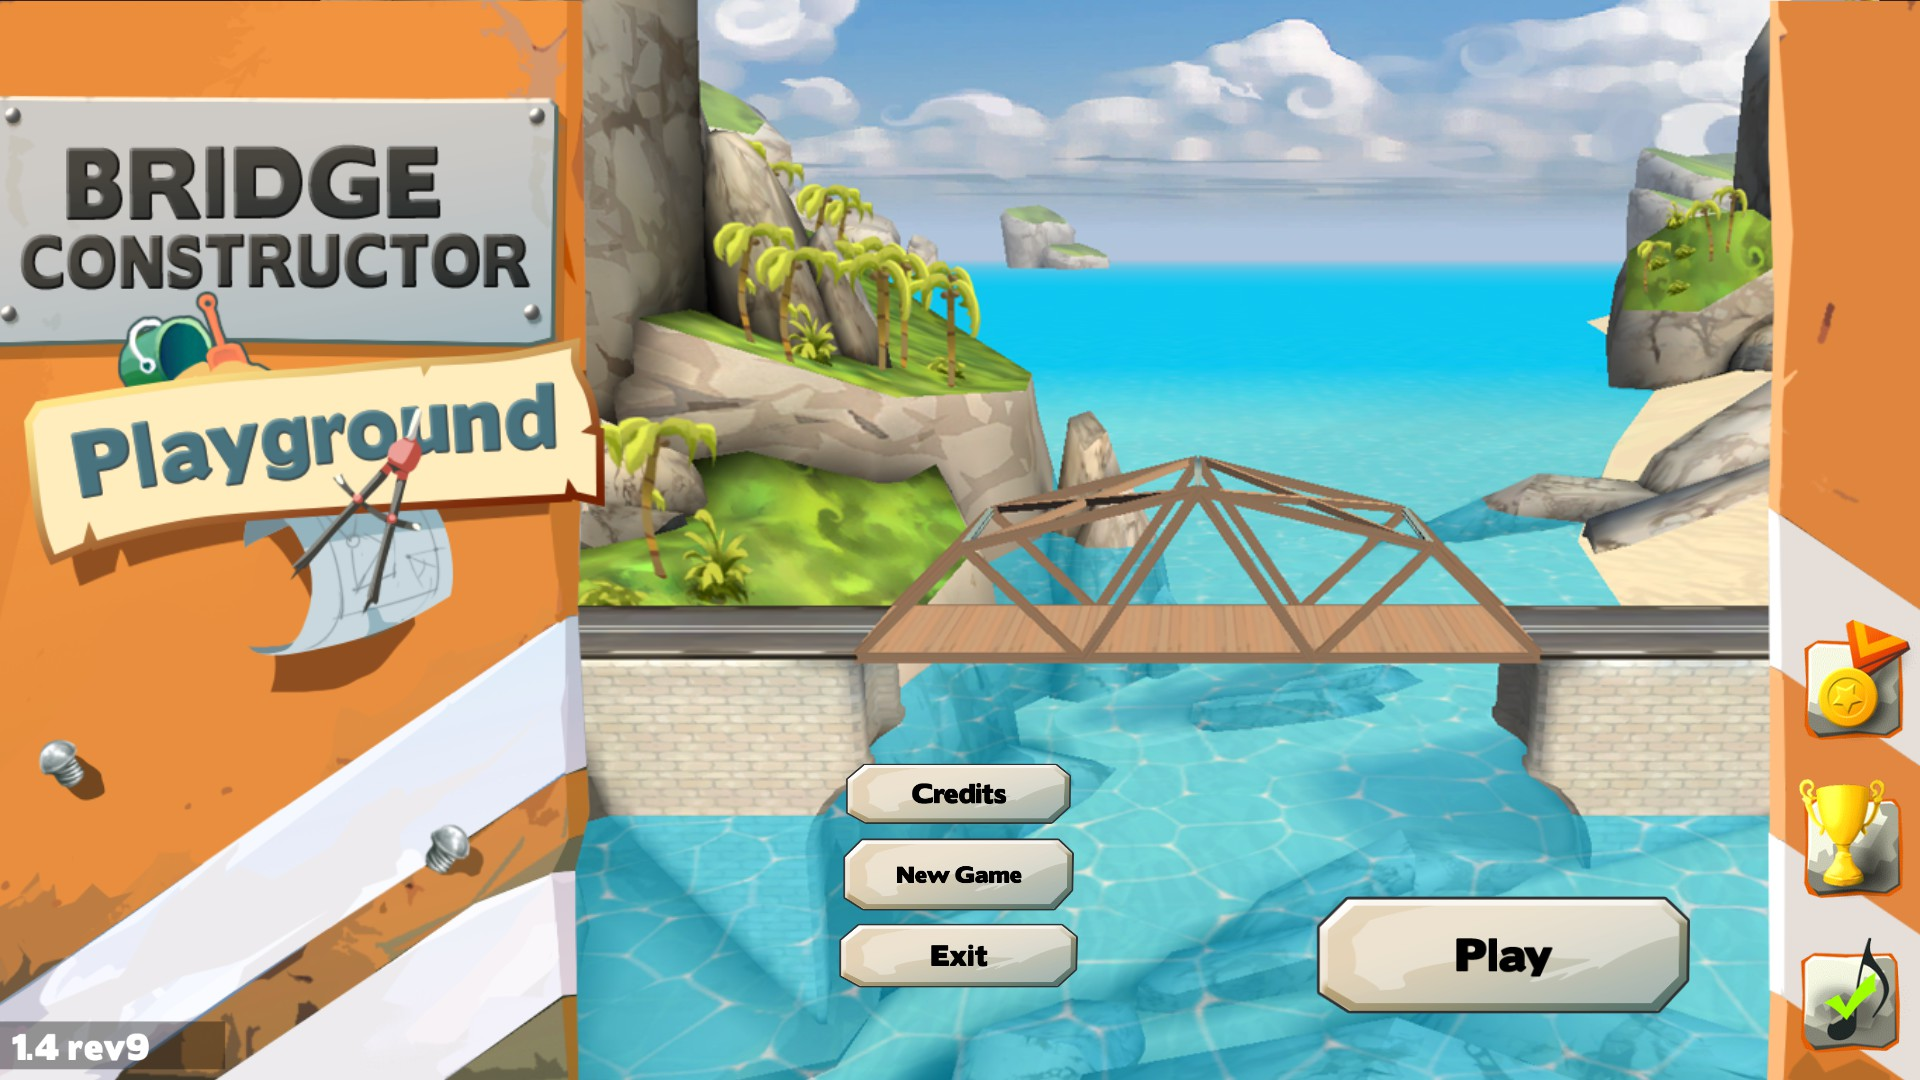 Bridge Constructor Playground Title Screen